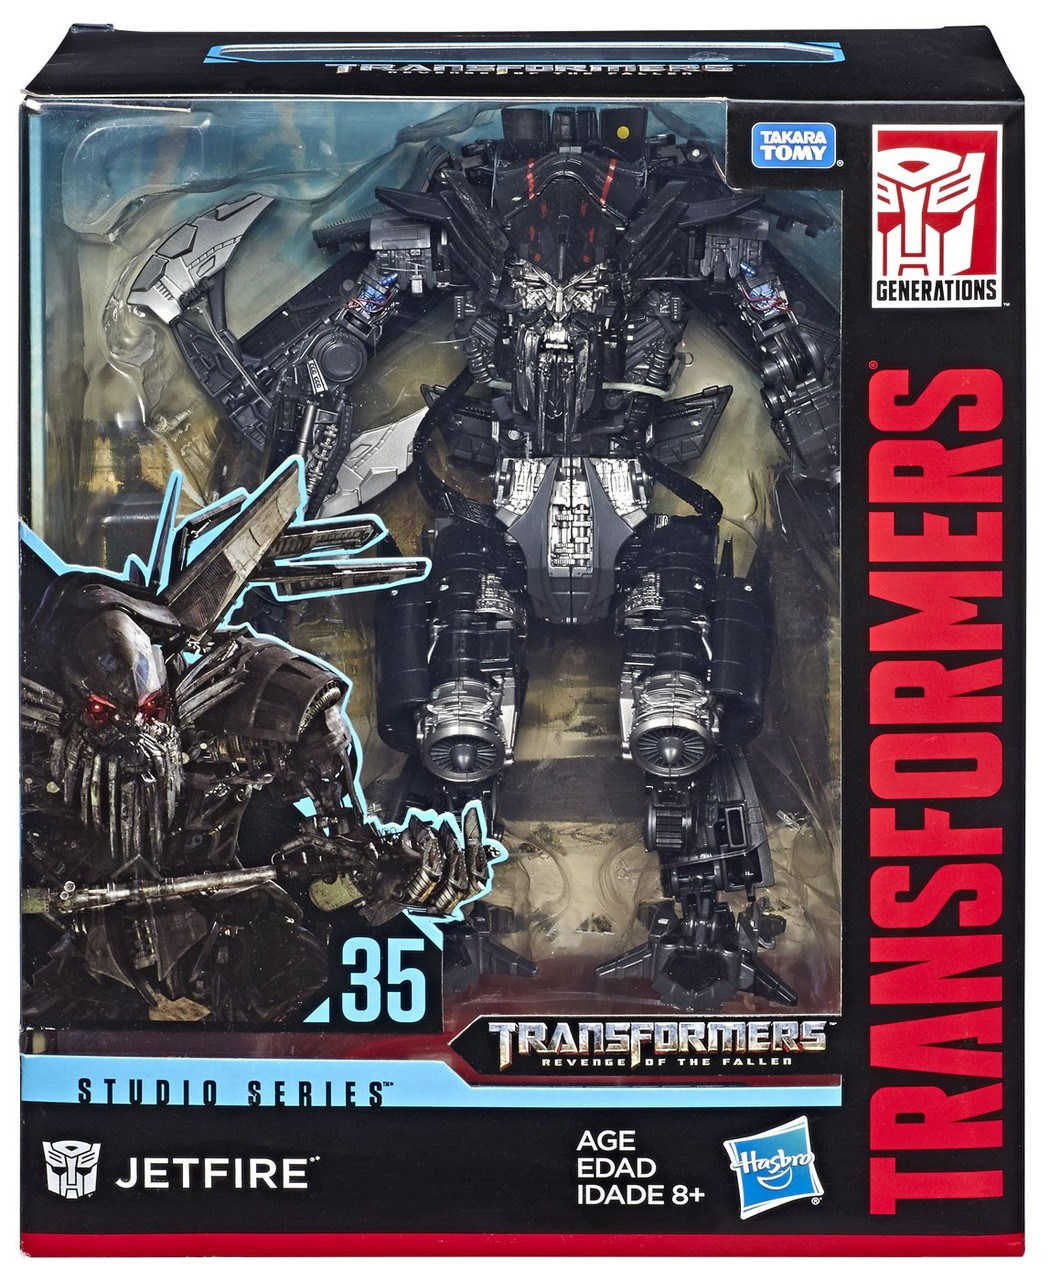 Transformers Generations Studio Series 35 Jetfire Leader Action Figure